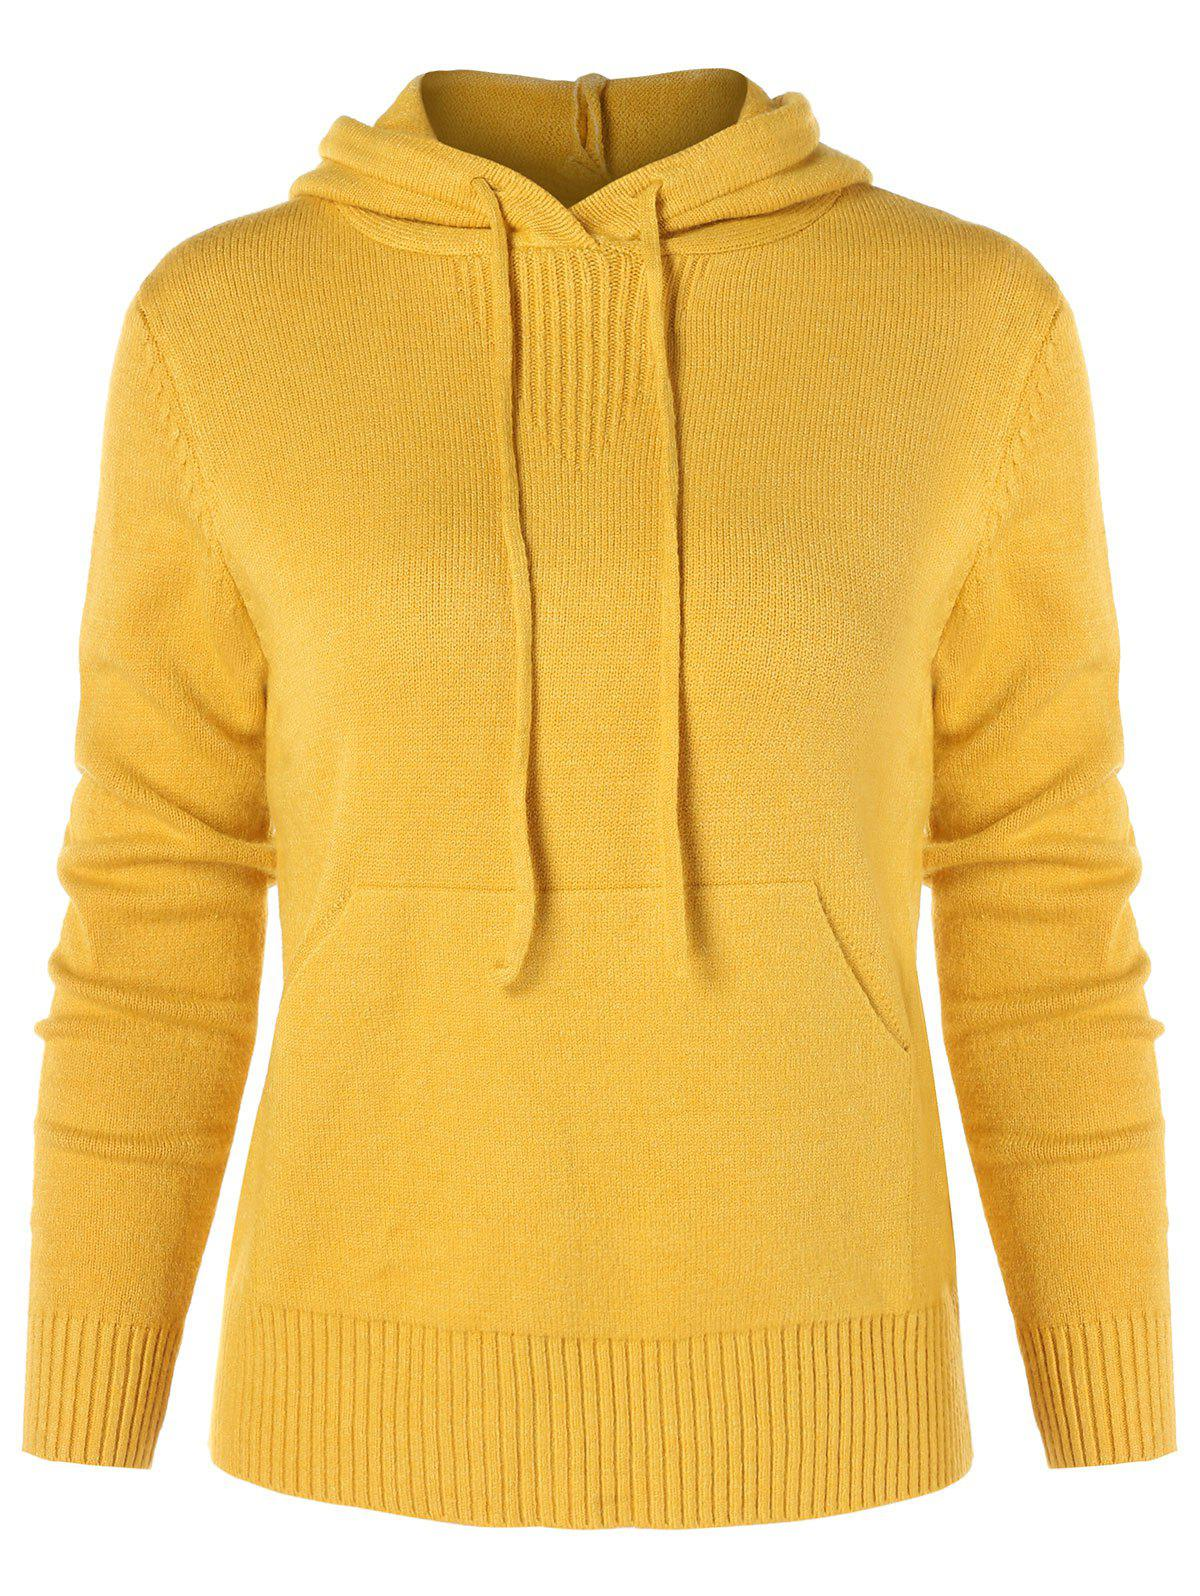 Discount Drawstring Knit Hoodie